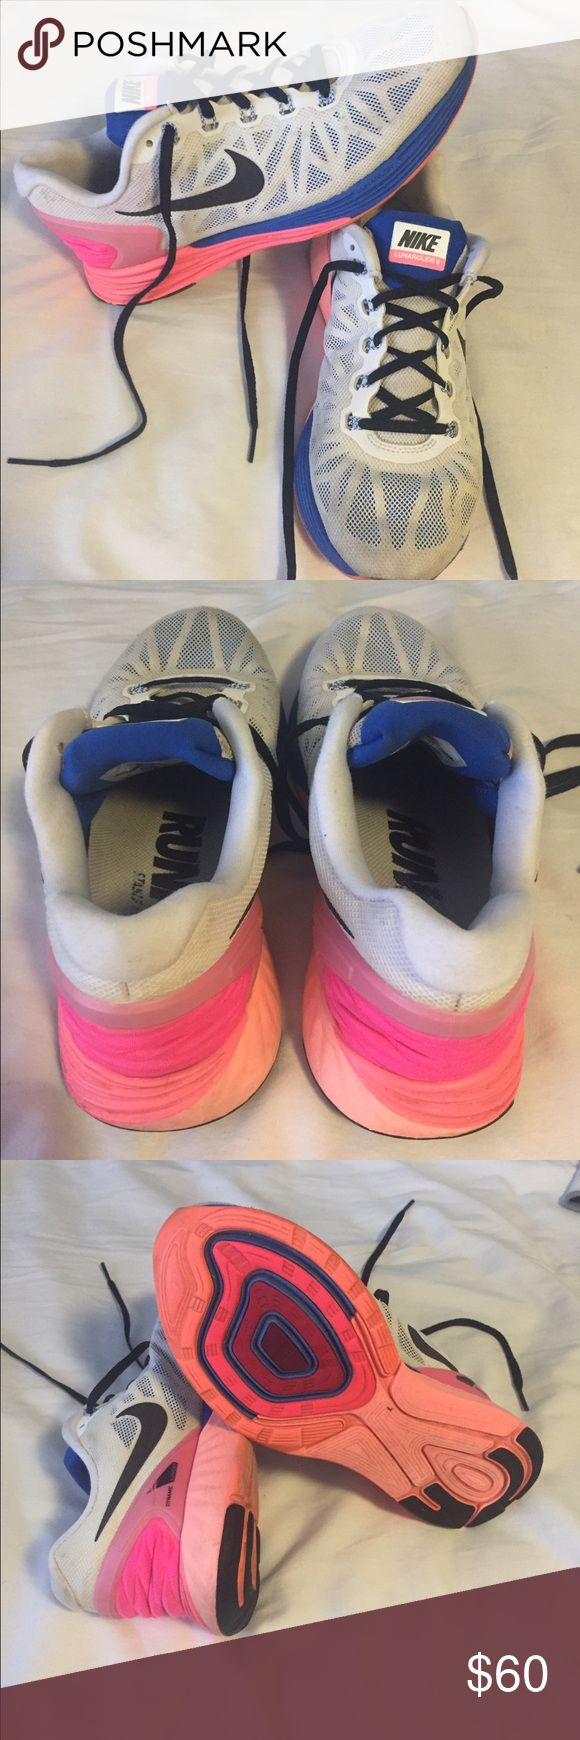 Nike Lunarglide 6 Sneakers Worn but FAR from being worn out(check bottoms to see they're not worn out) . This comfortable sneaker provides excellent support for running and everyday activities. Don't be afraid to make an offer!😊 Nike Shoes Sneakers